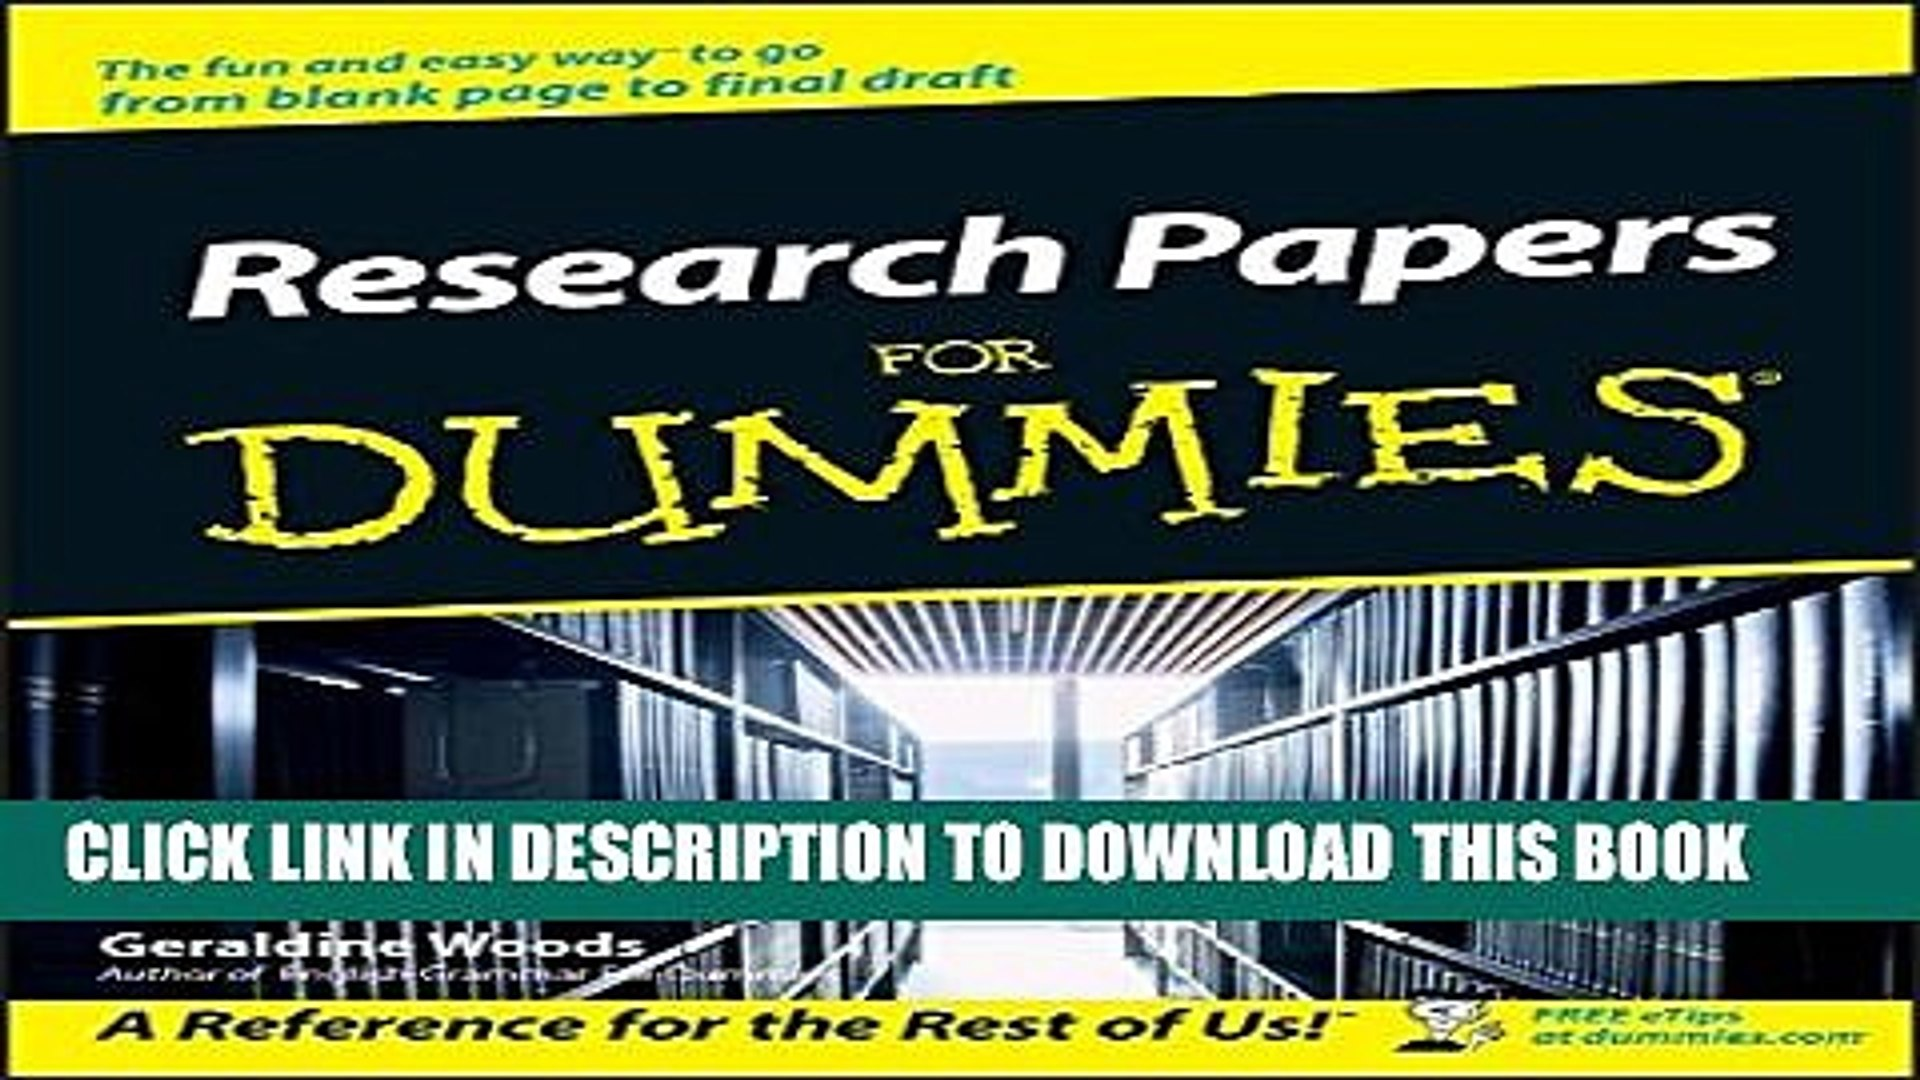 007 Research Paper Papers For Dummies X1080 Unforgettable Pdf Download Free Full